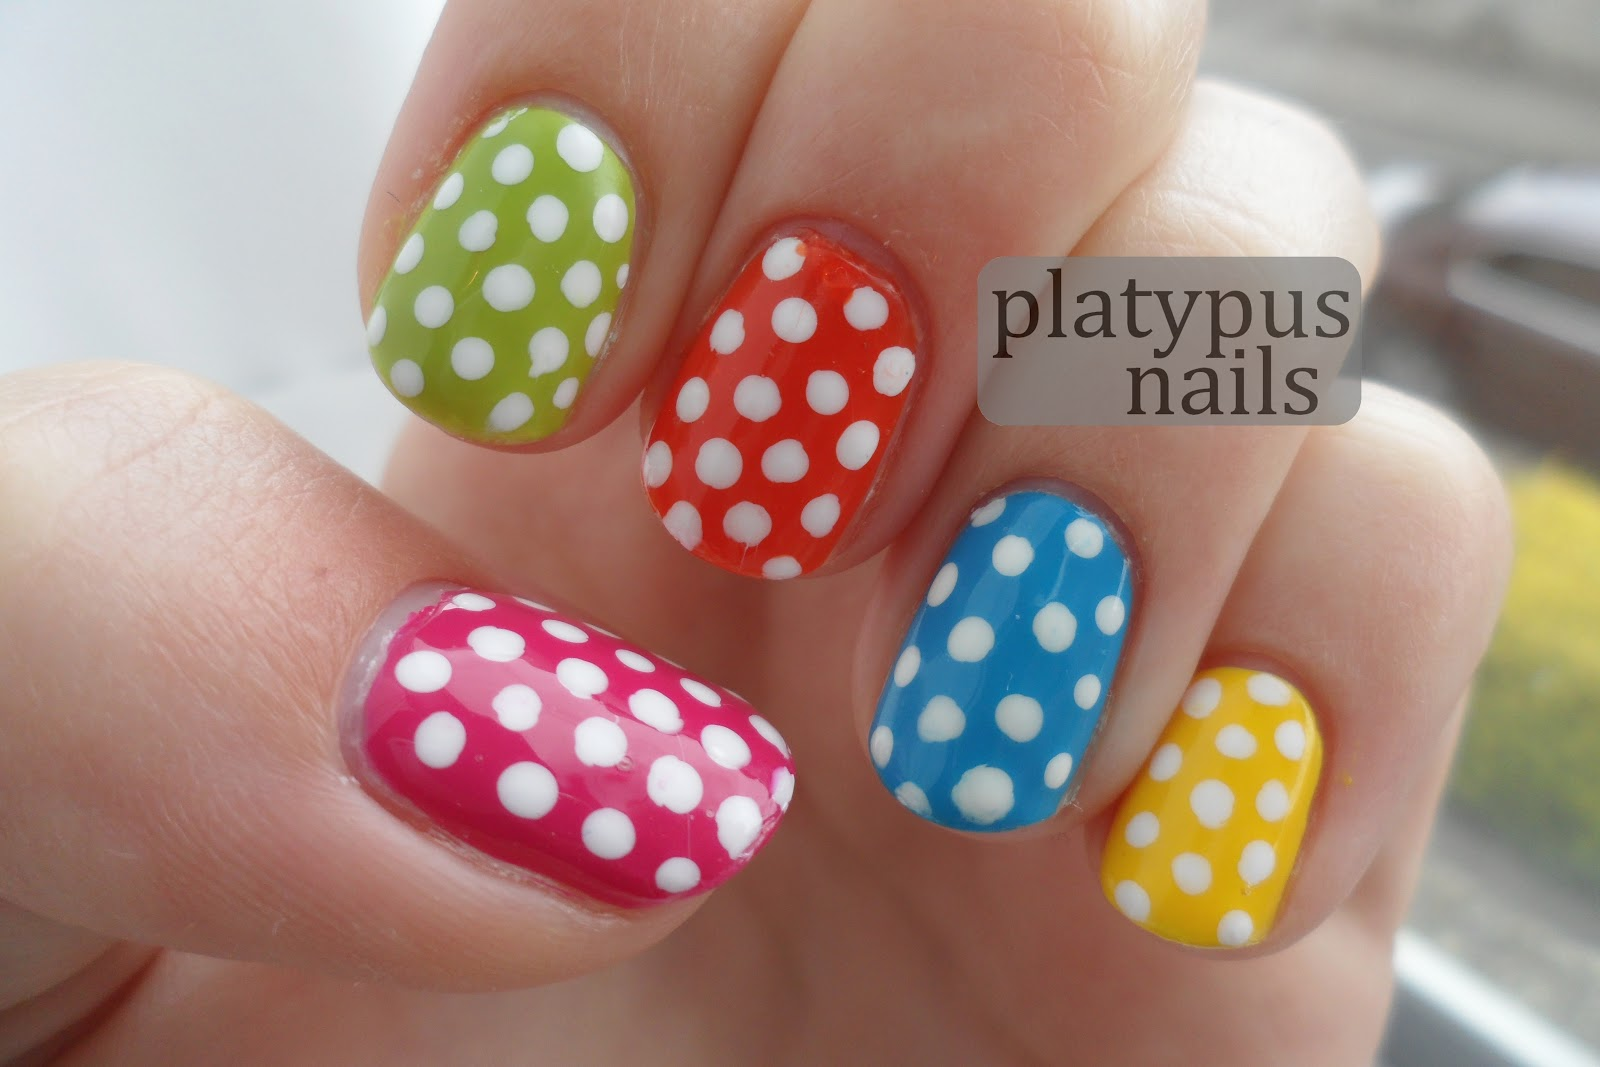 loonyplatypus: [nails] Day 11 - Polka Dot Nails